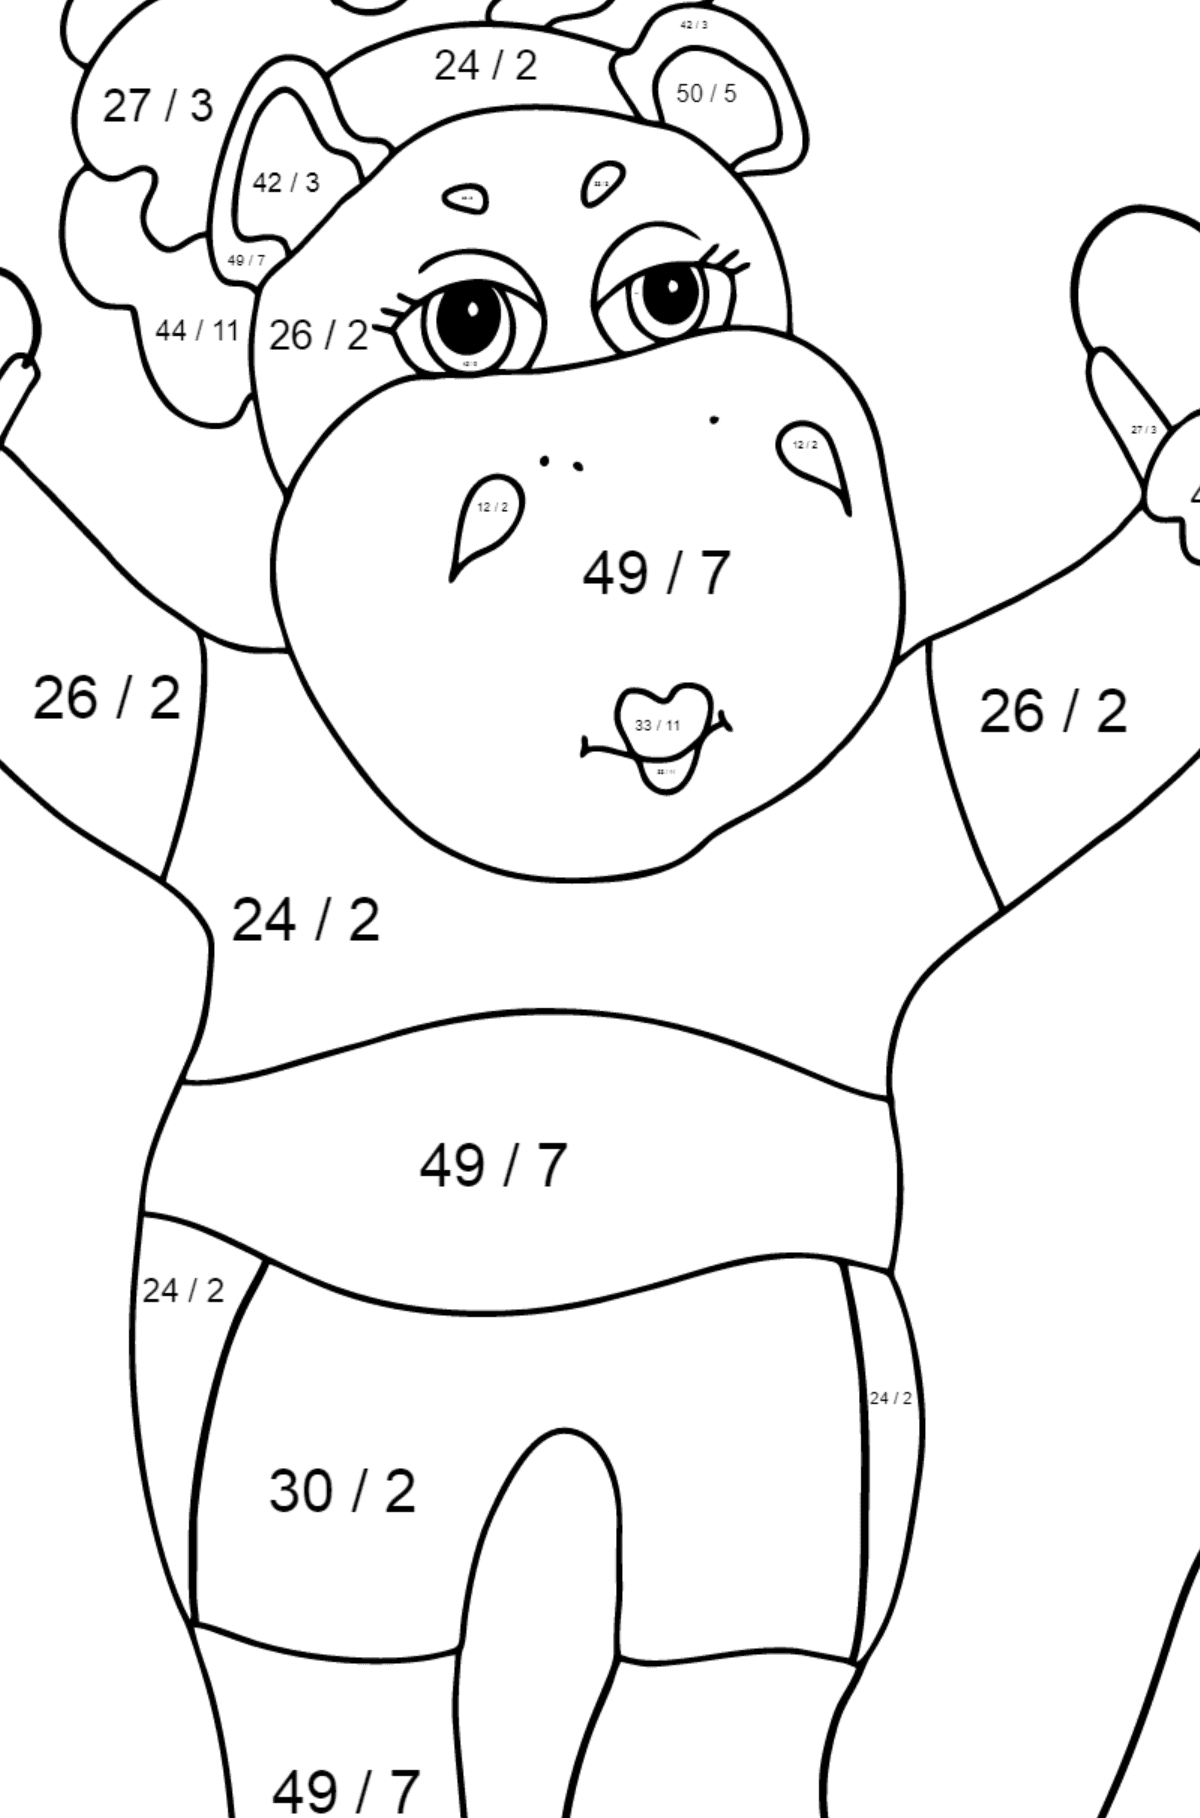 Coloring Page - A Hippo is Jumping on a Rope for Children  - Color by Number Division